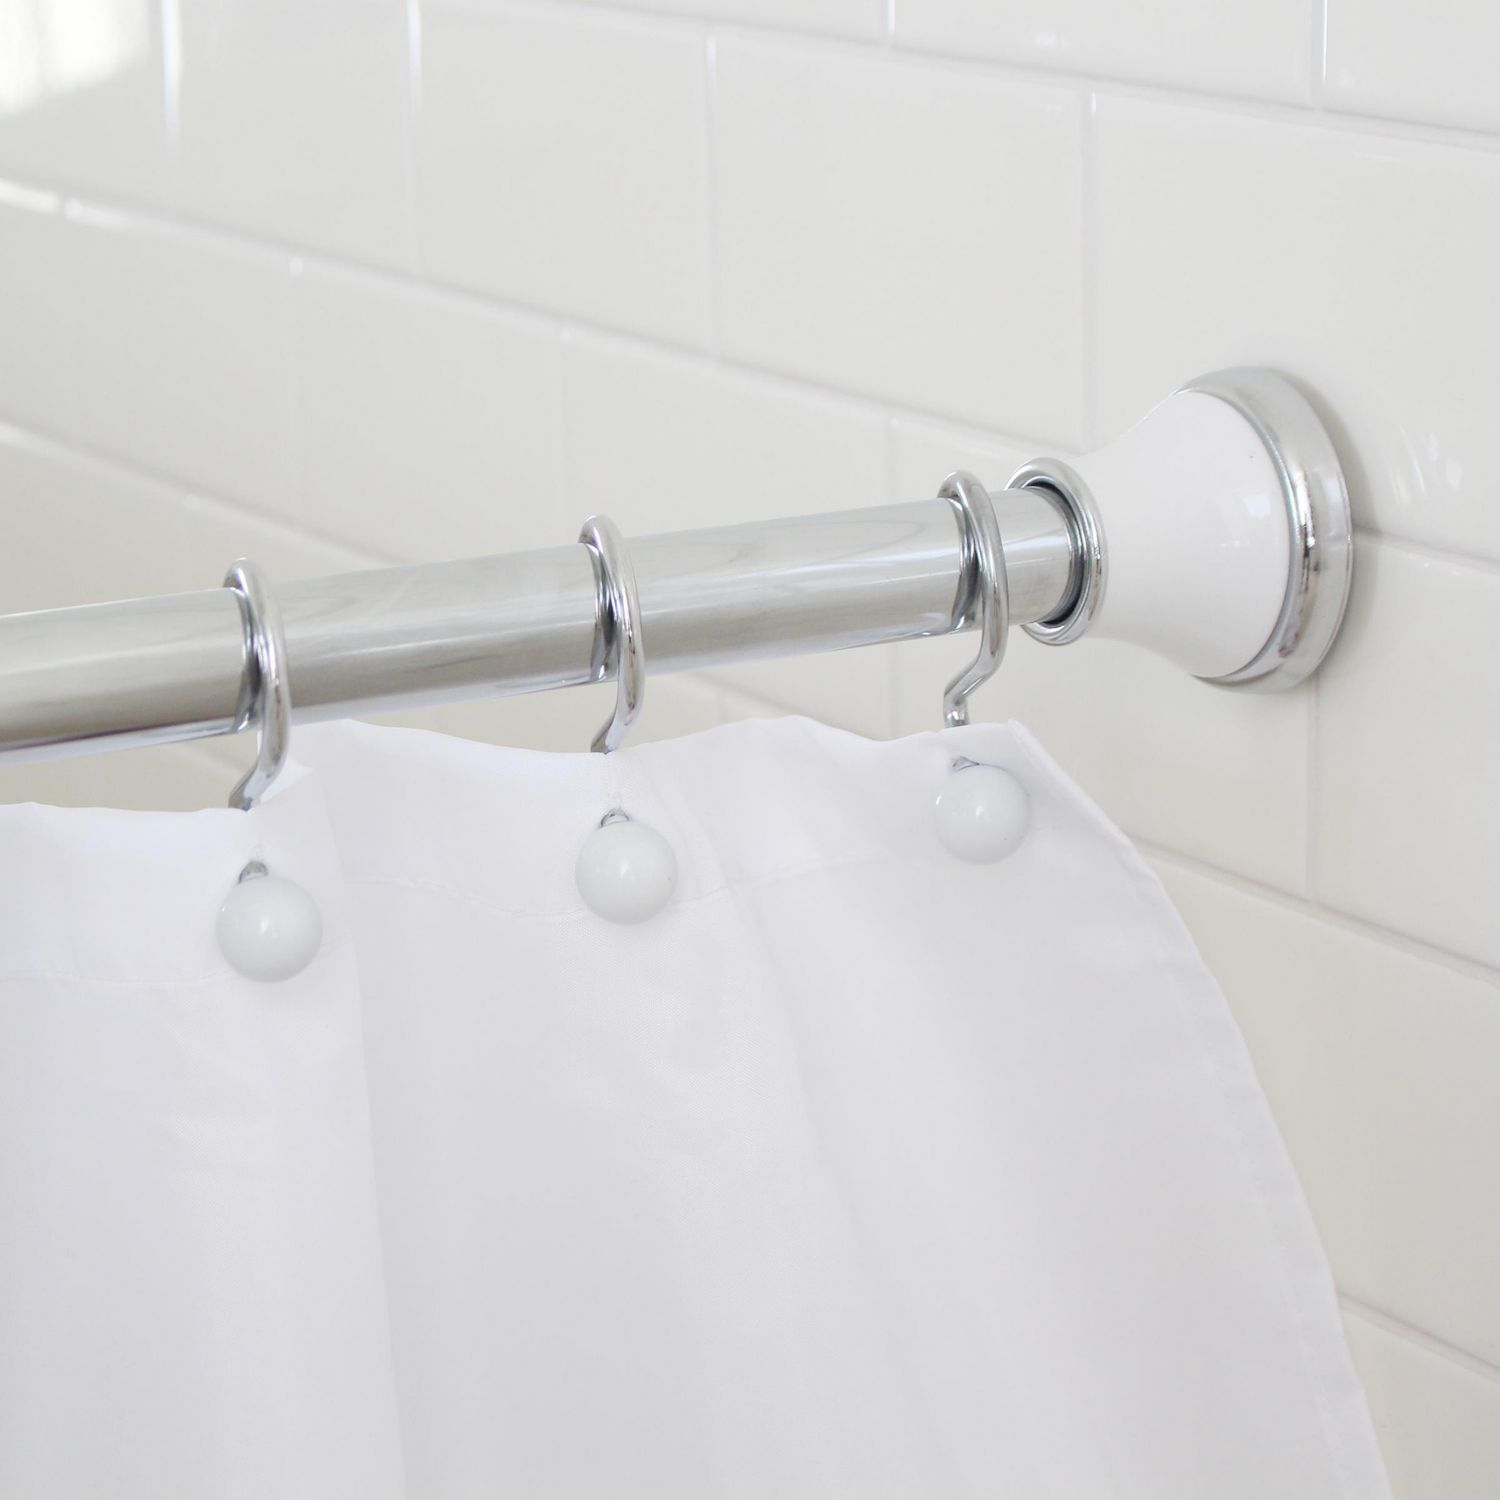 Splash Home Regal Rust Resistant Strong Hold Constant Tension Bathroom Decorative Shower Curtain Rod Extendable 42 72 Inches